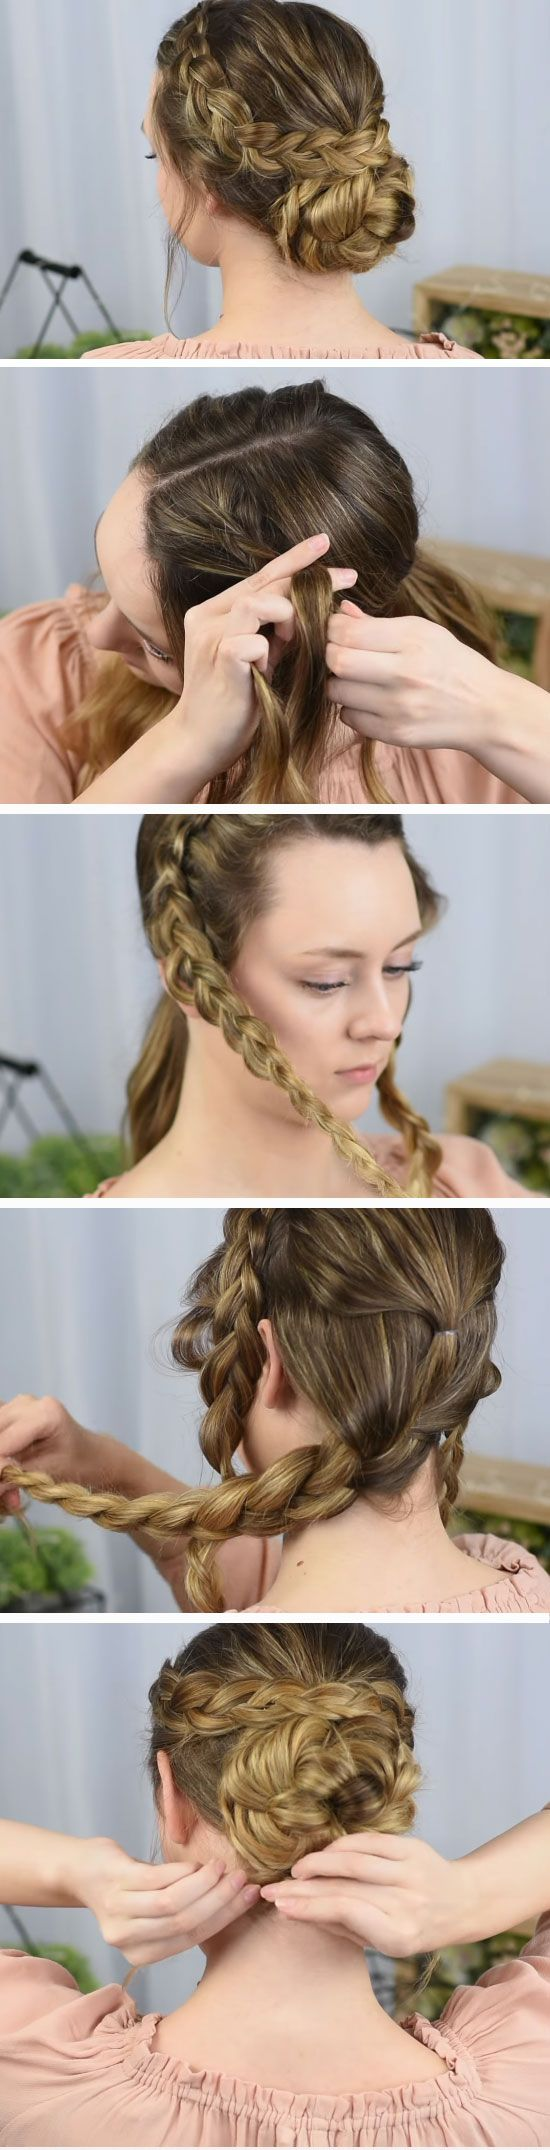 15 Easy Diy Prom Hairstyles For Medium Hair Hair Pinterest